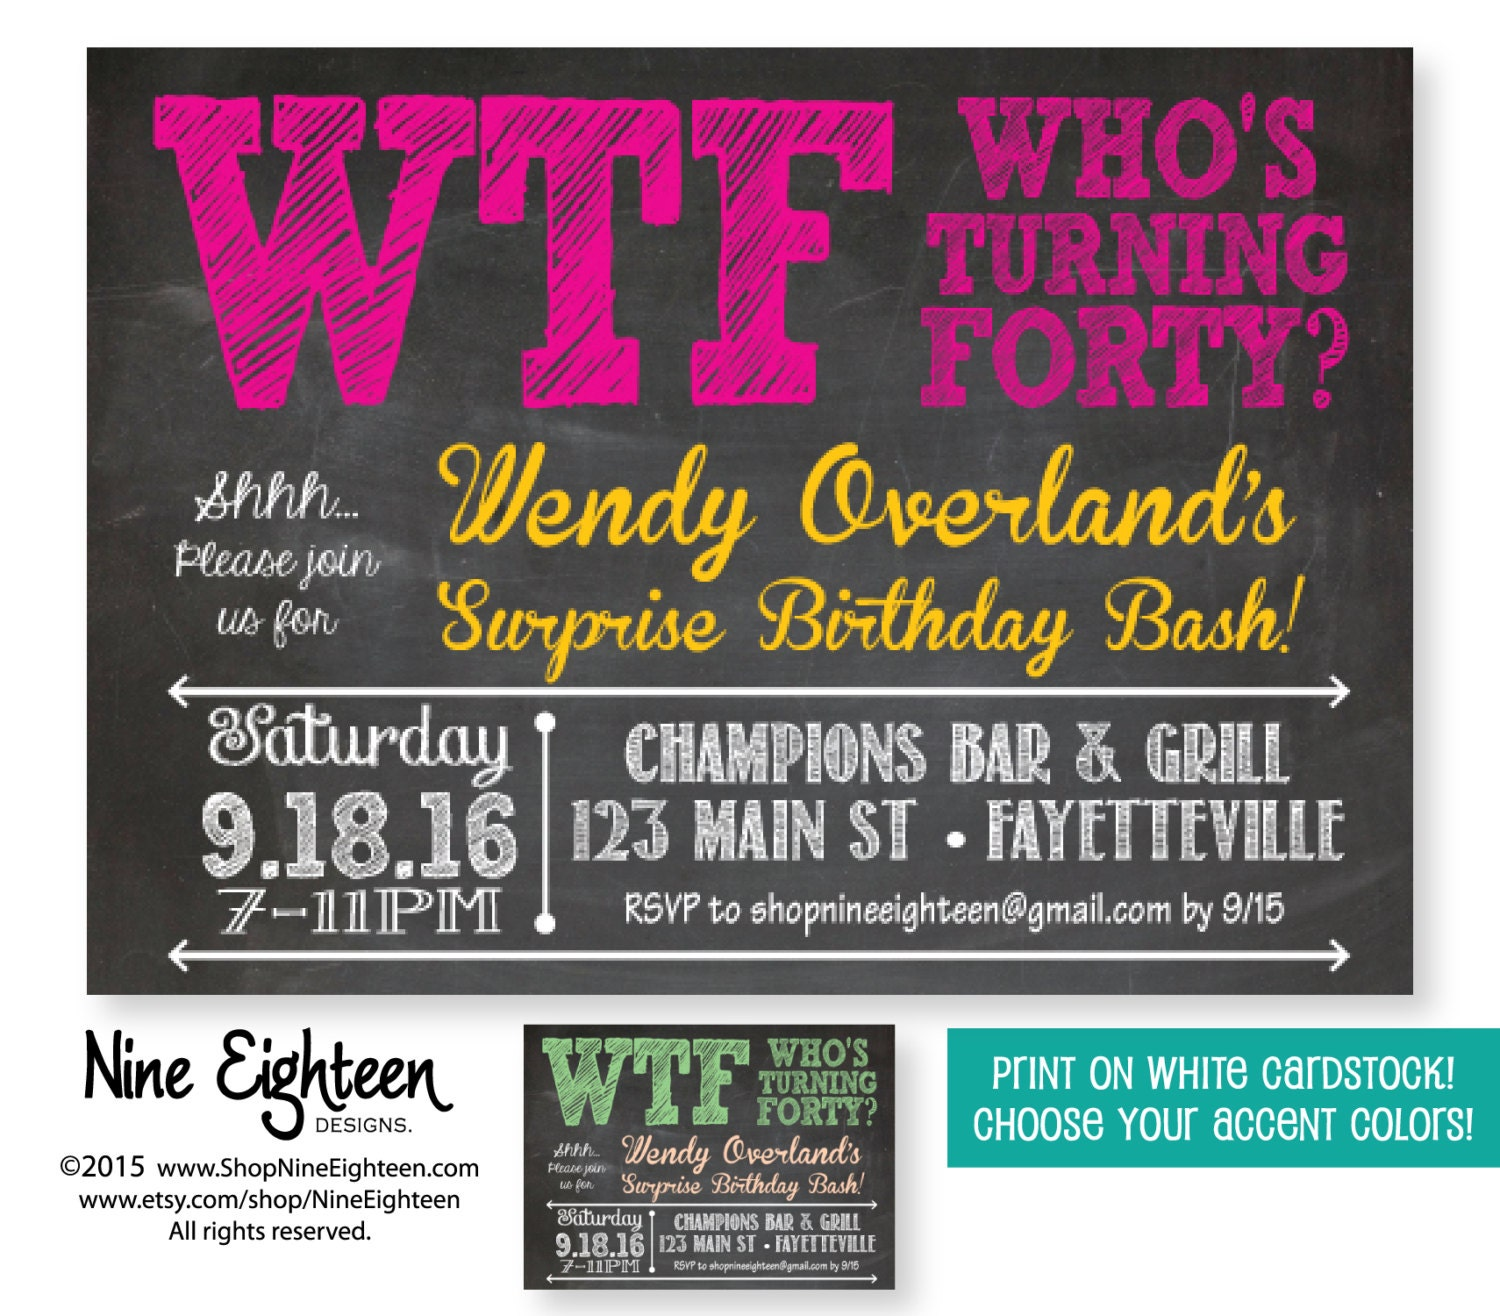 40th Surprise Birthday Party Invitation WTF Who's By